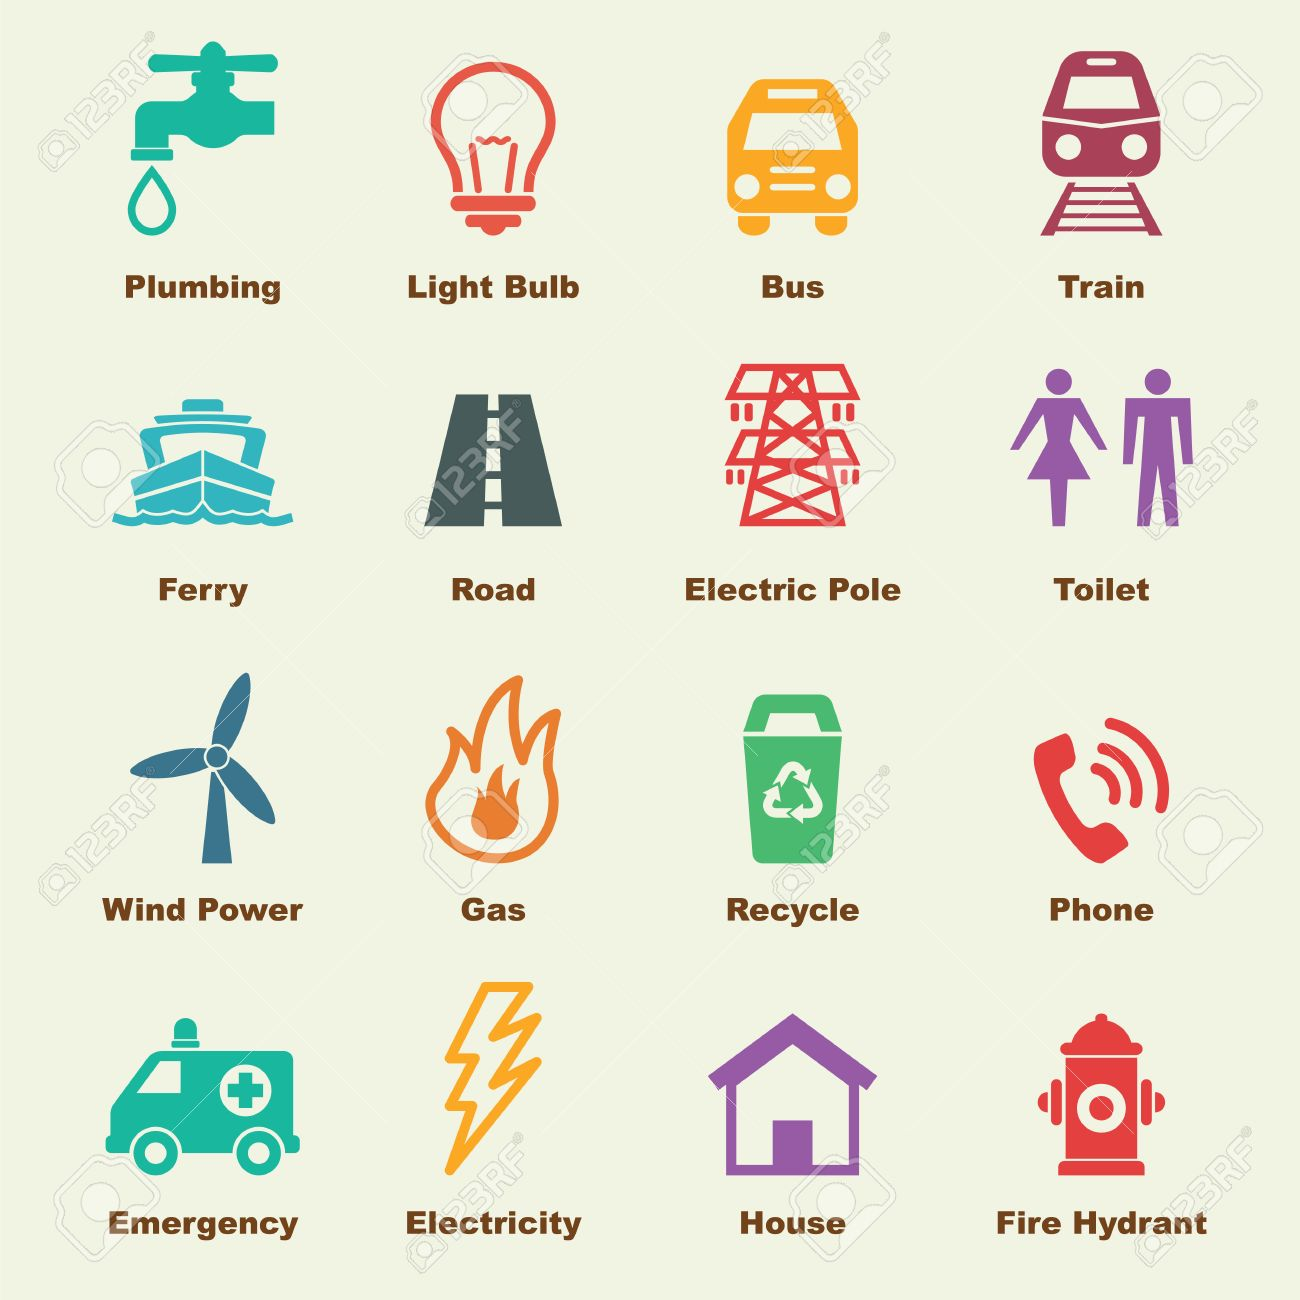 Infographic icon ideas